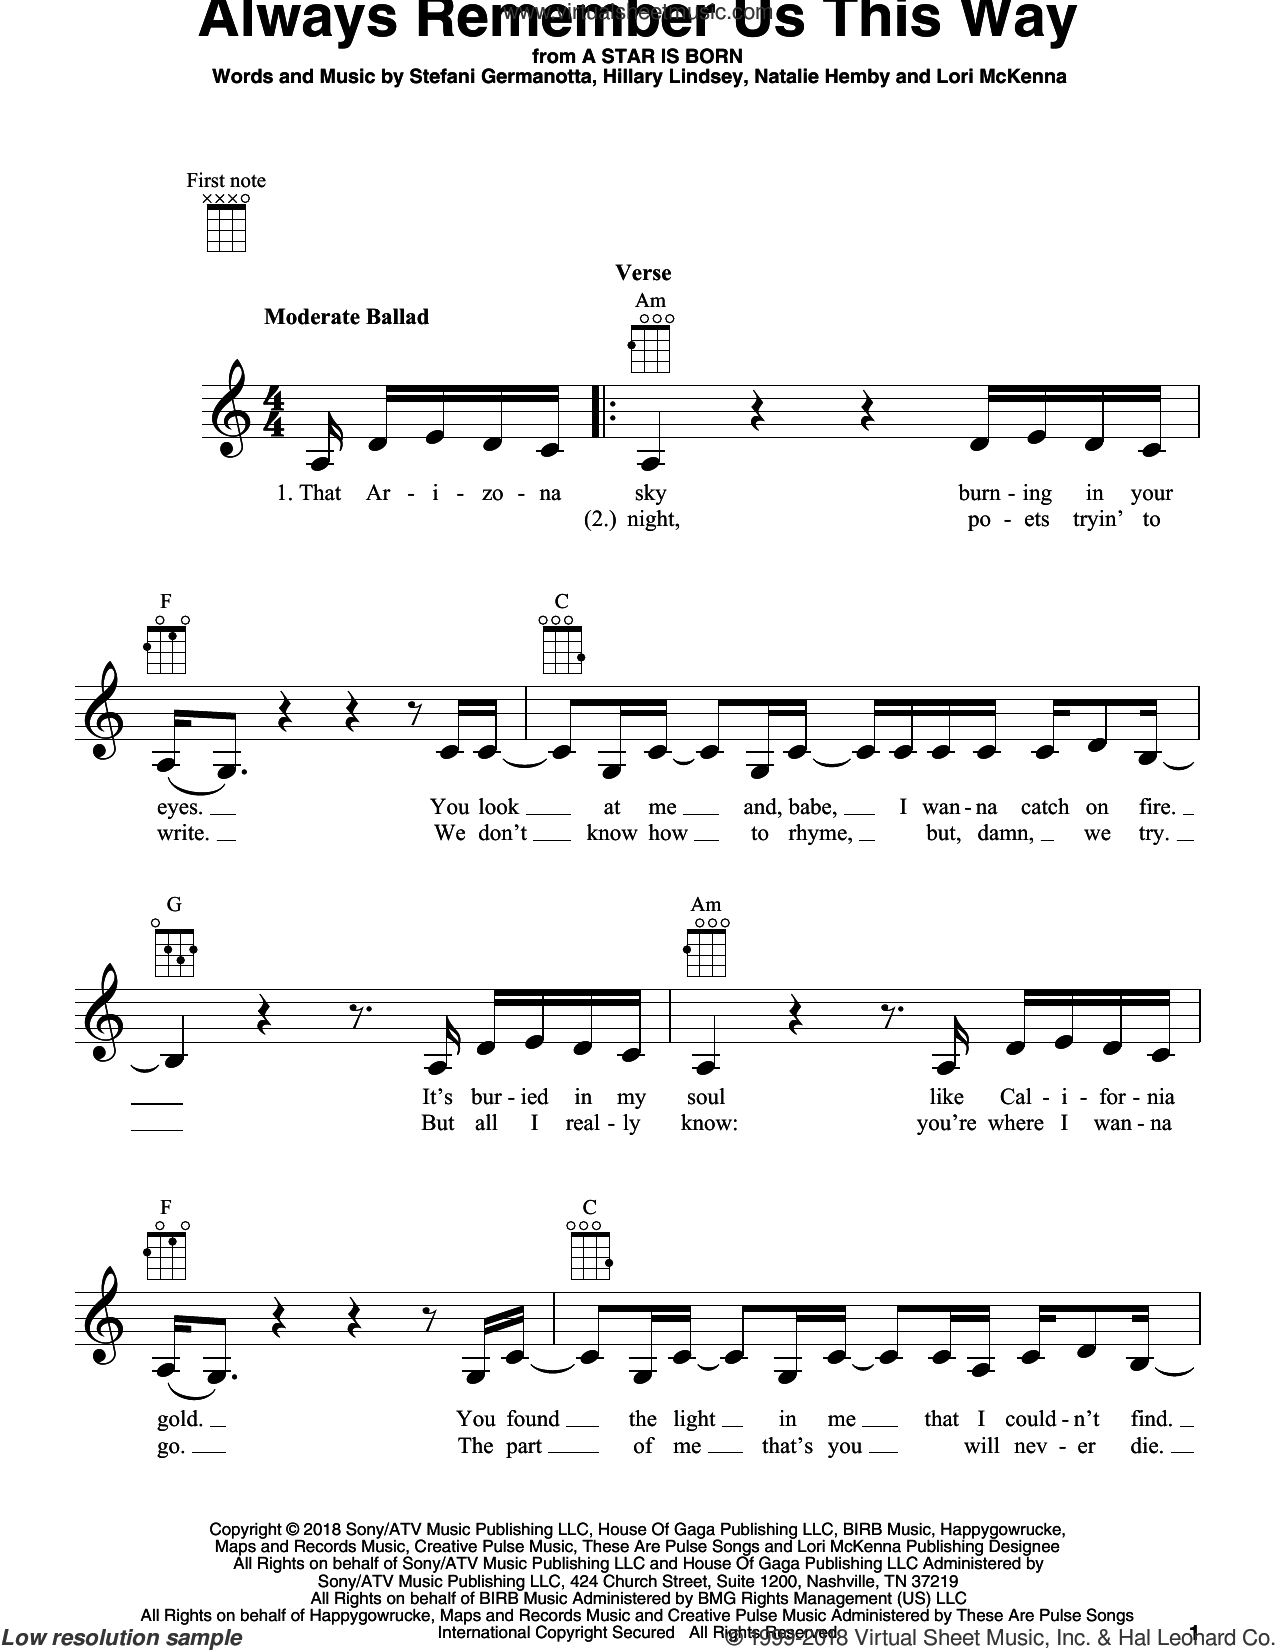 Always Remember Us This Way (from A Star Is Born) sheet music for ukulele by Lady Gaga, Bradley Cooper, Lukas Nelson, Hillary Lindsey, Lori McKenna and Natalie Hemby, intermediate skill level